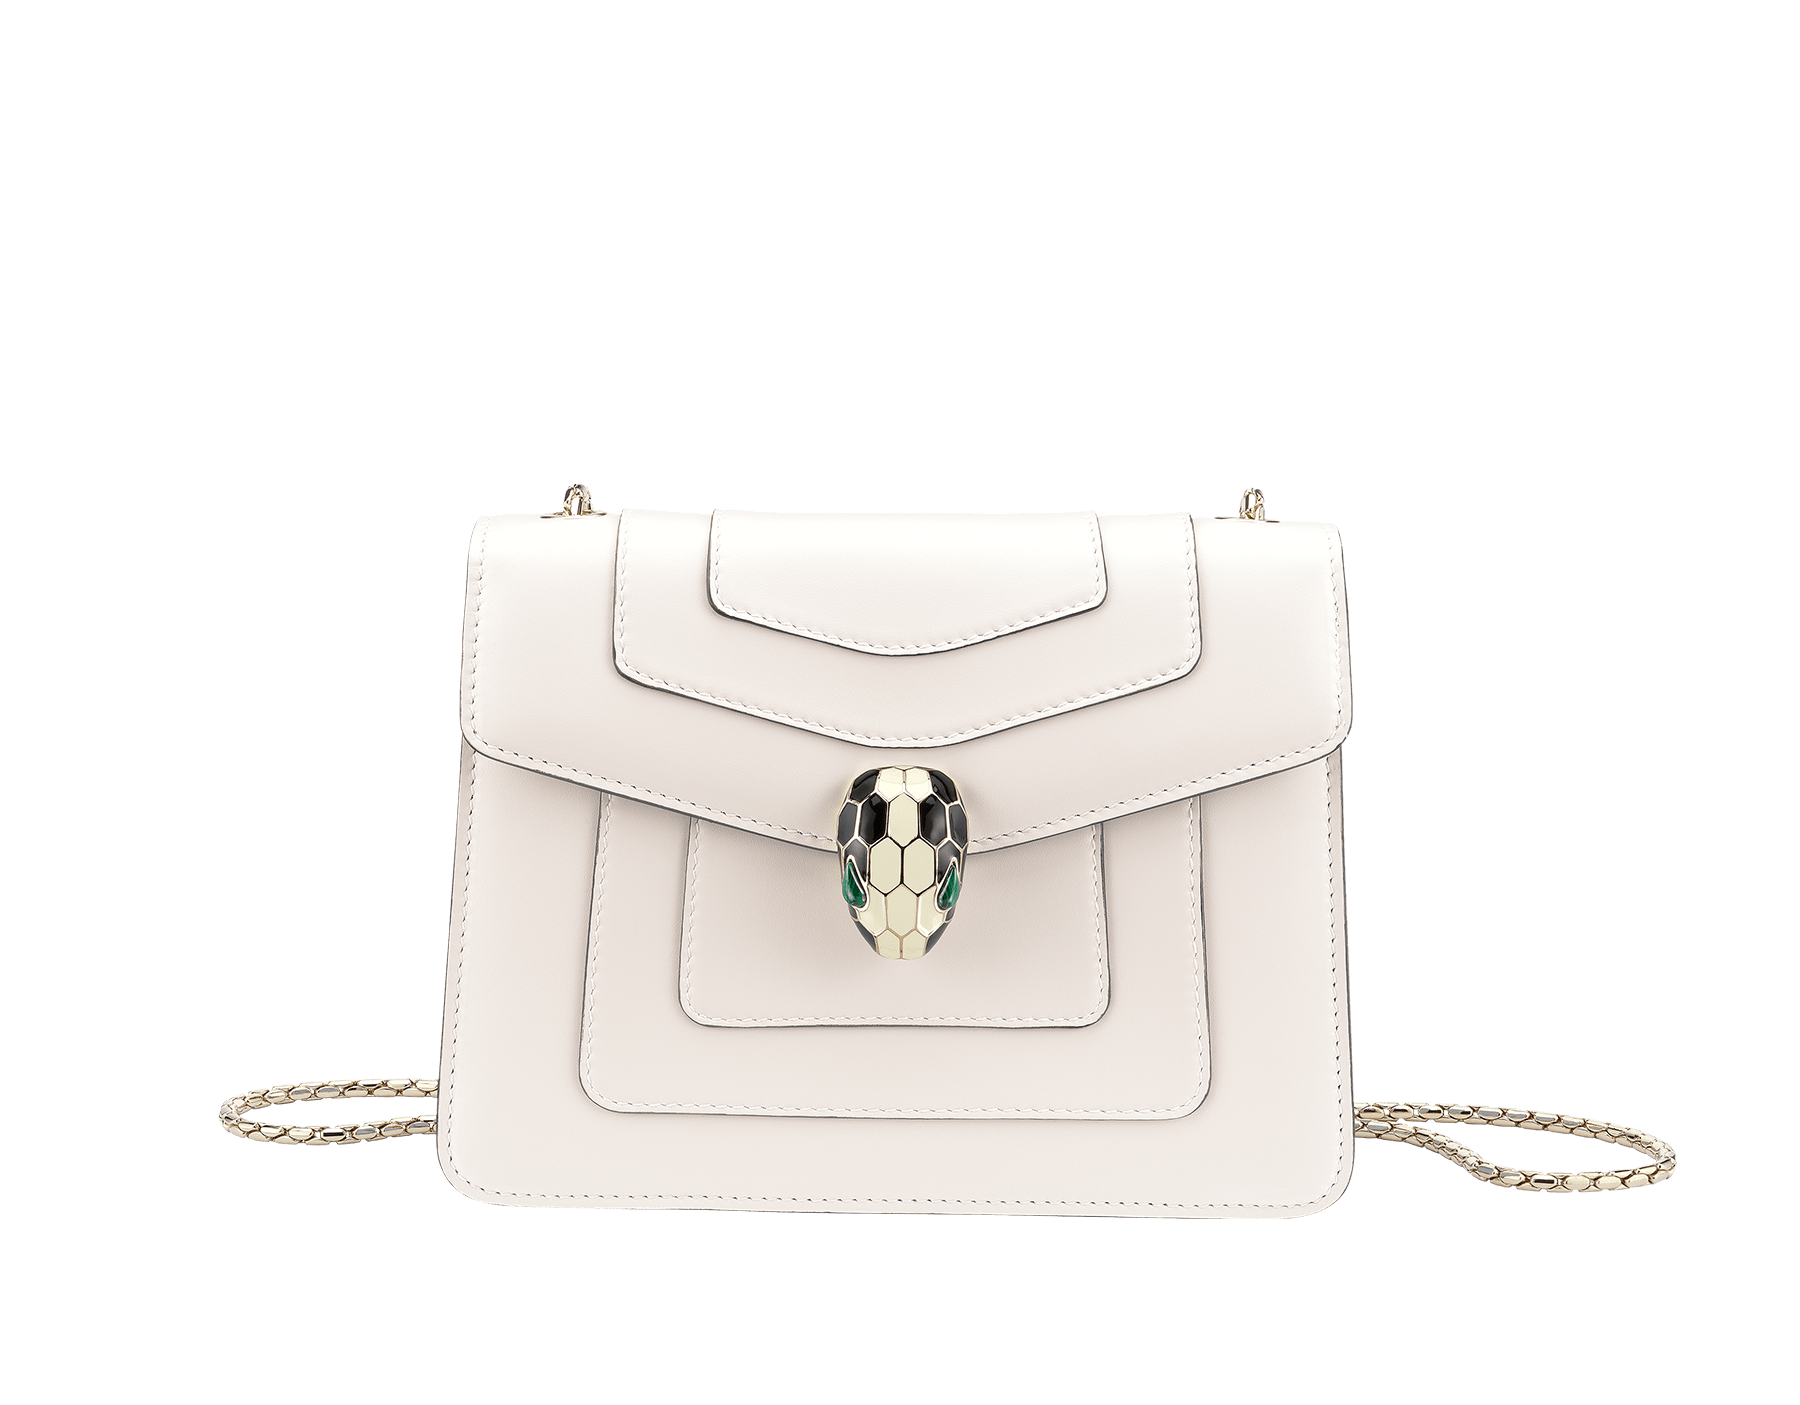 Flap cover bag Serpenti Forever in white agate calf leather. Brass light gold plated snake head closure in black and white enamel with eyes in green malachite. 283167 image 1